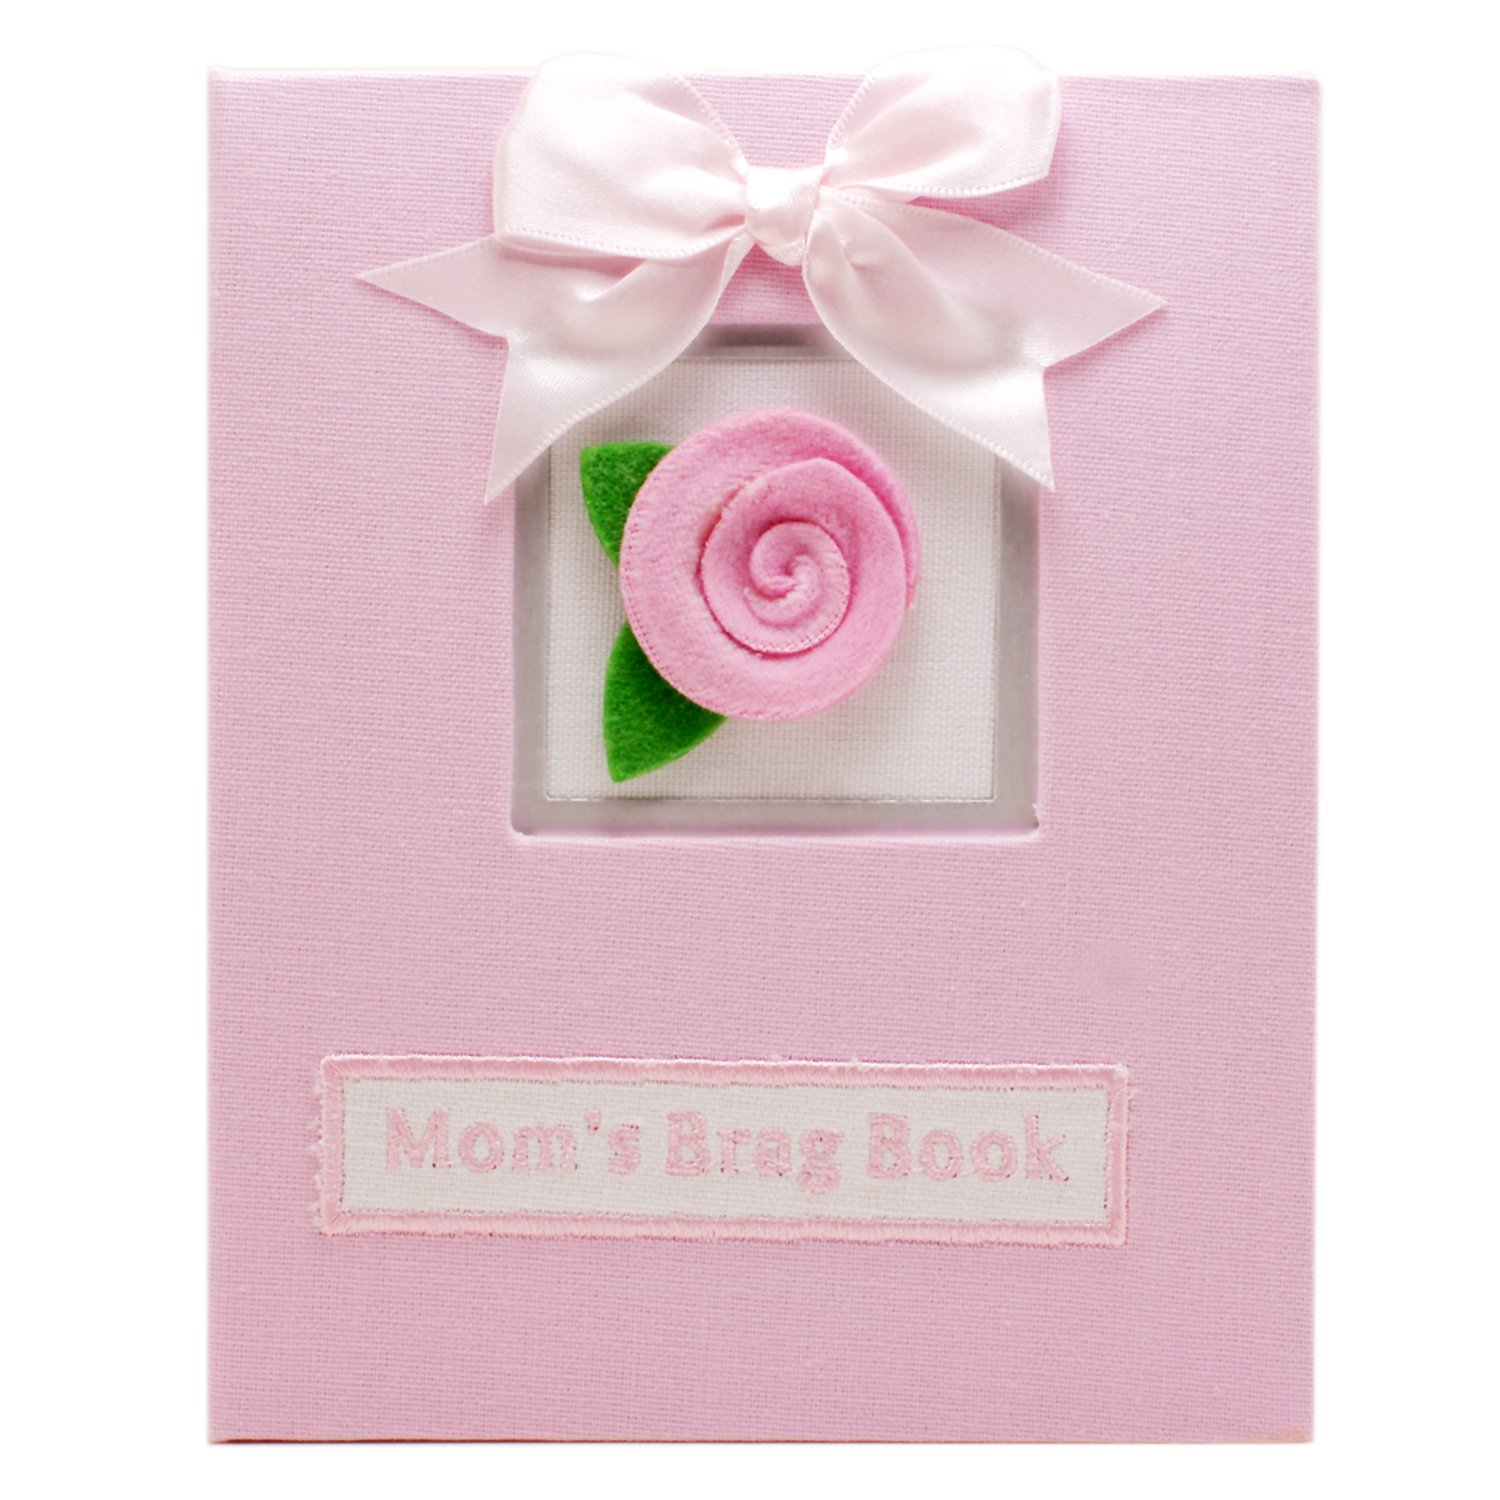 "Mom's Brag Book Mother's Flip Photo Album - Holds 36 Standard-Sized 4""x6"" Photos by Stephan Baby"